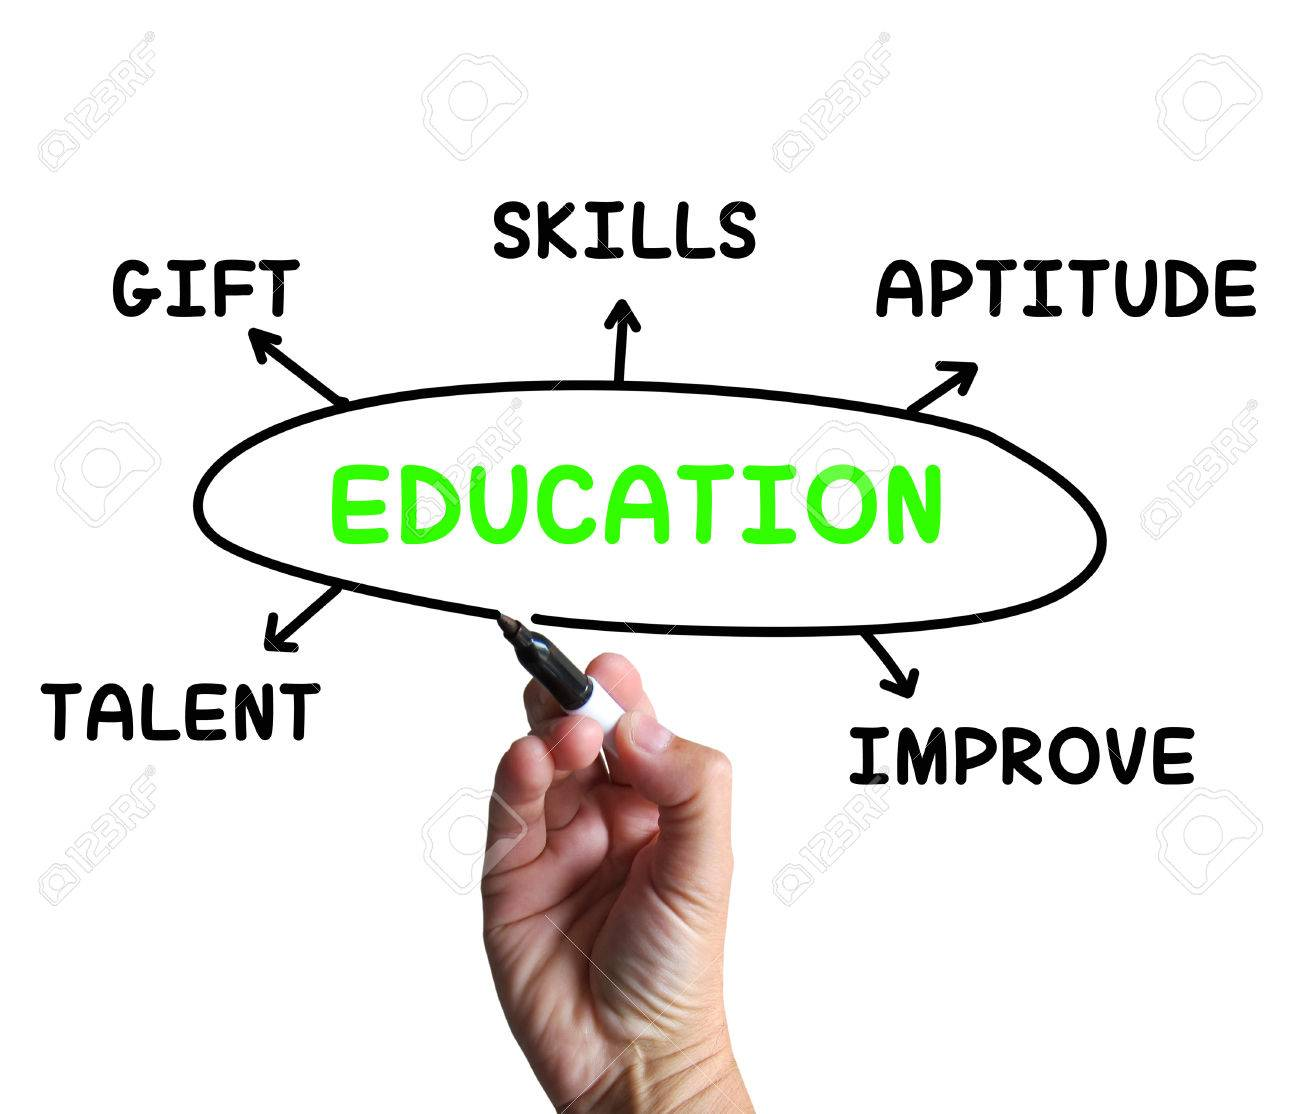 education diagram meaning aptitude knowledge and improving stock    stock photo   education diagram meaning aptitude knowledge and improving